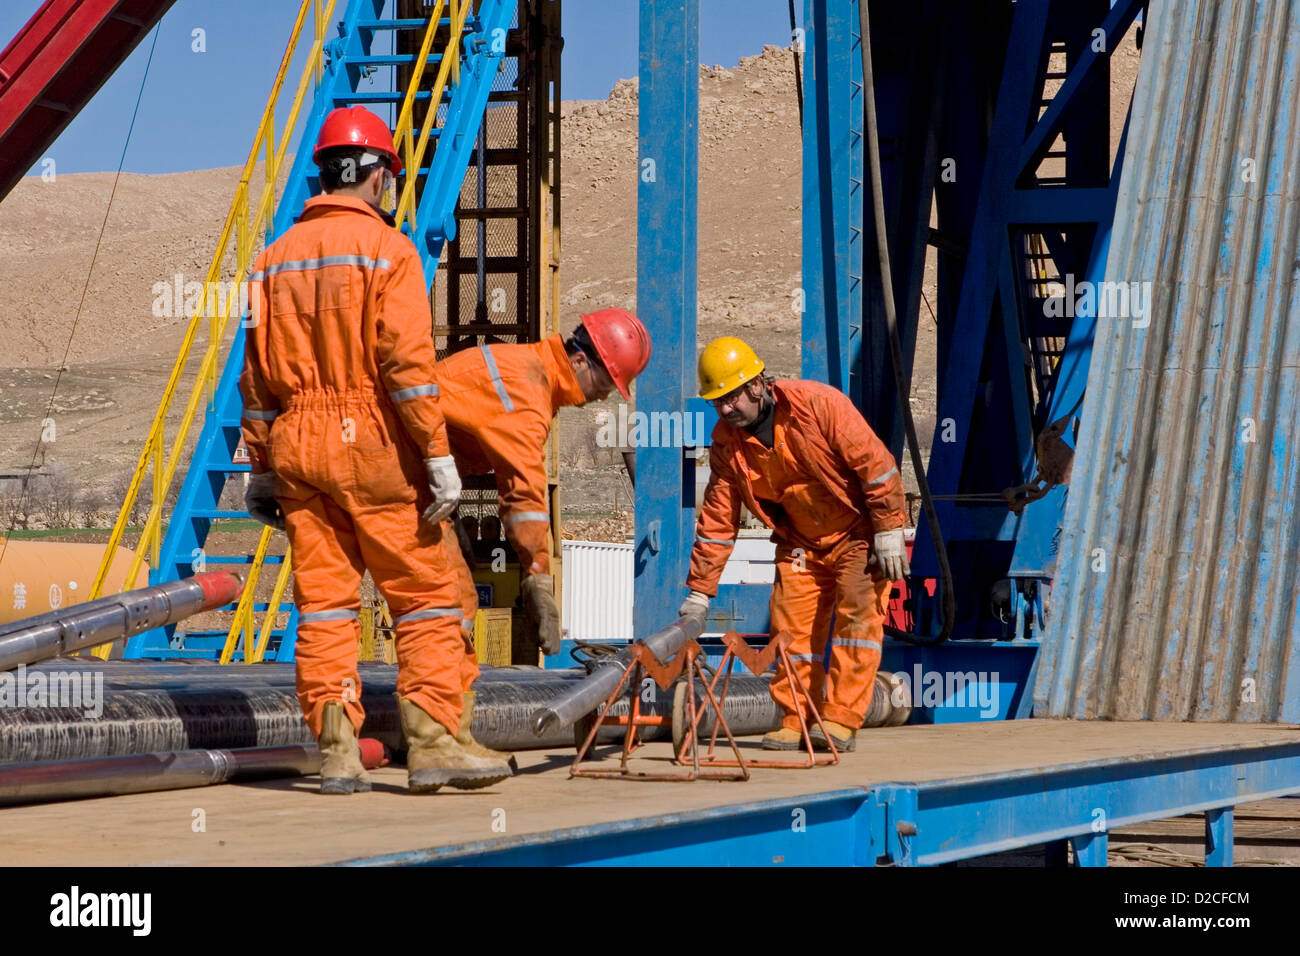 Onshore oil and gas exploration site. Making up wire line logging tools before lifting up to rig platform floor. - Stock Image